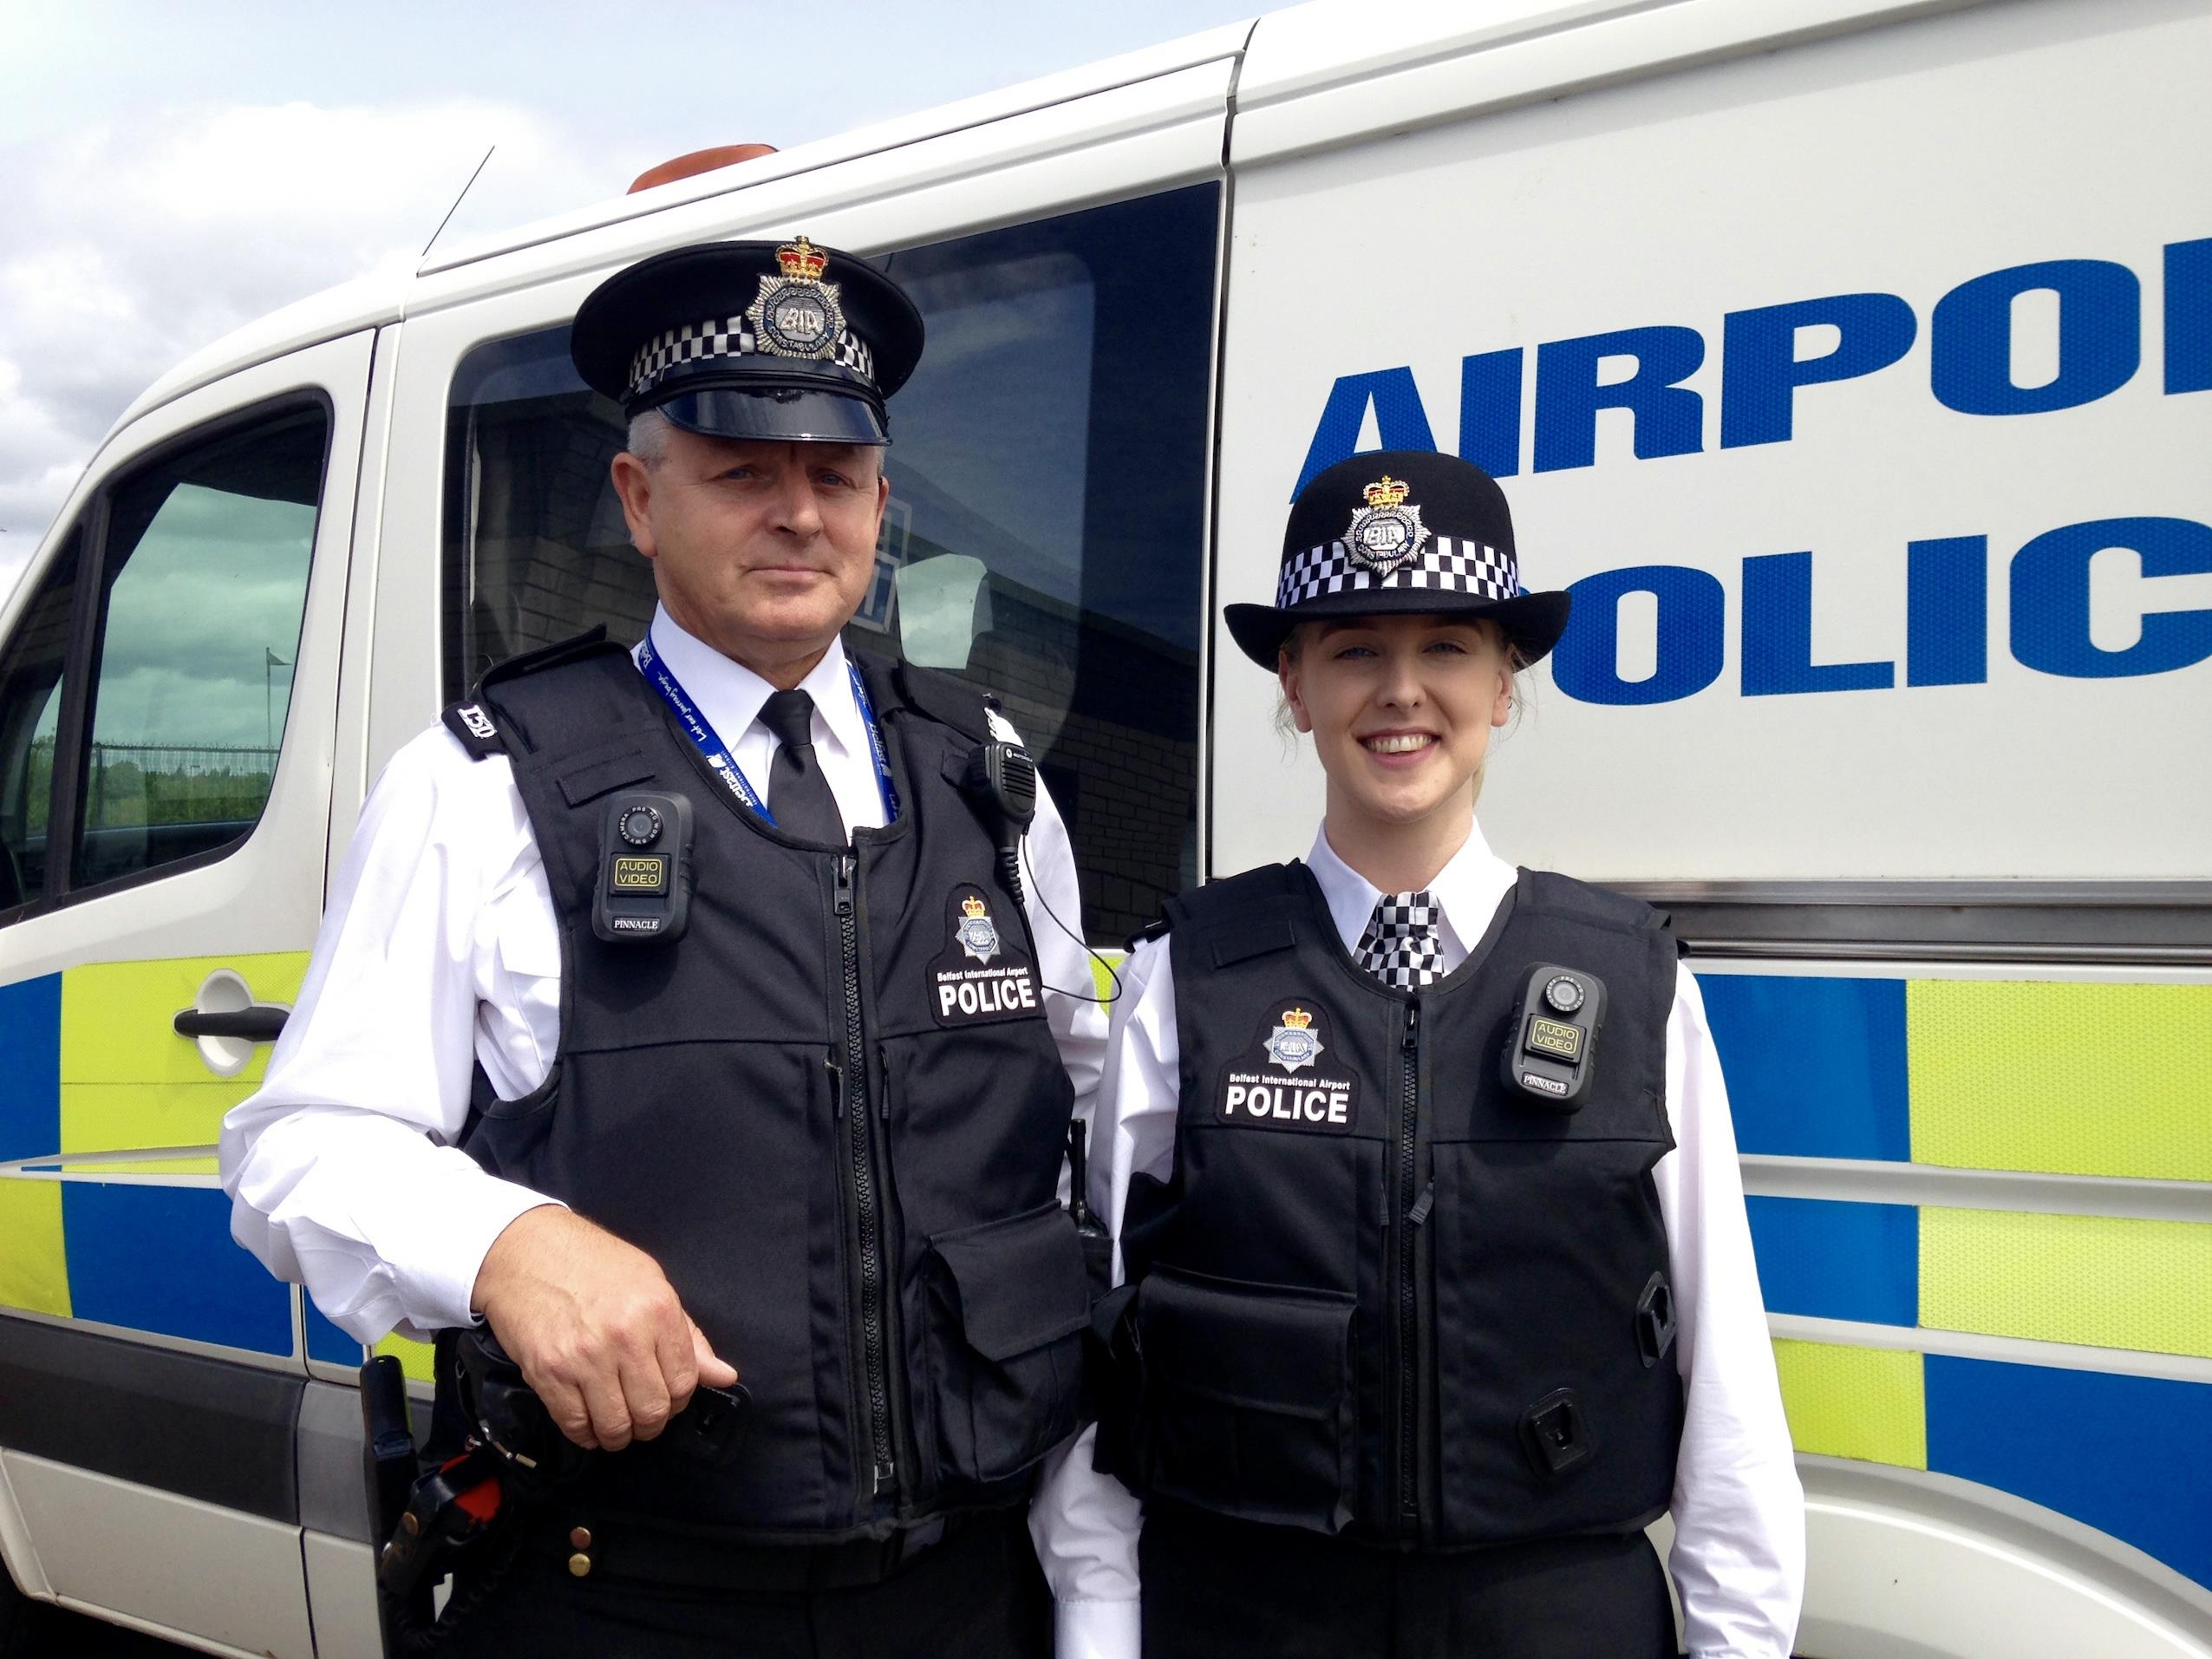 Airport Police get body-worn video cams